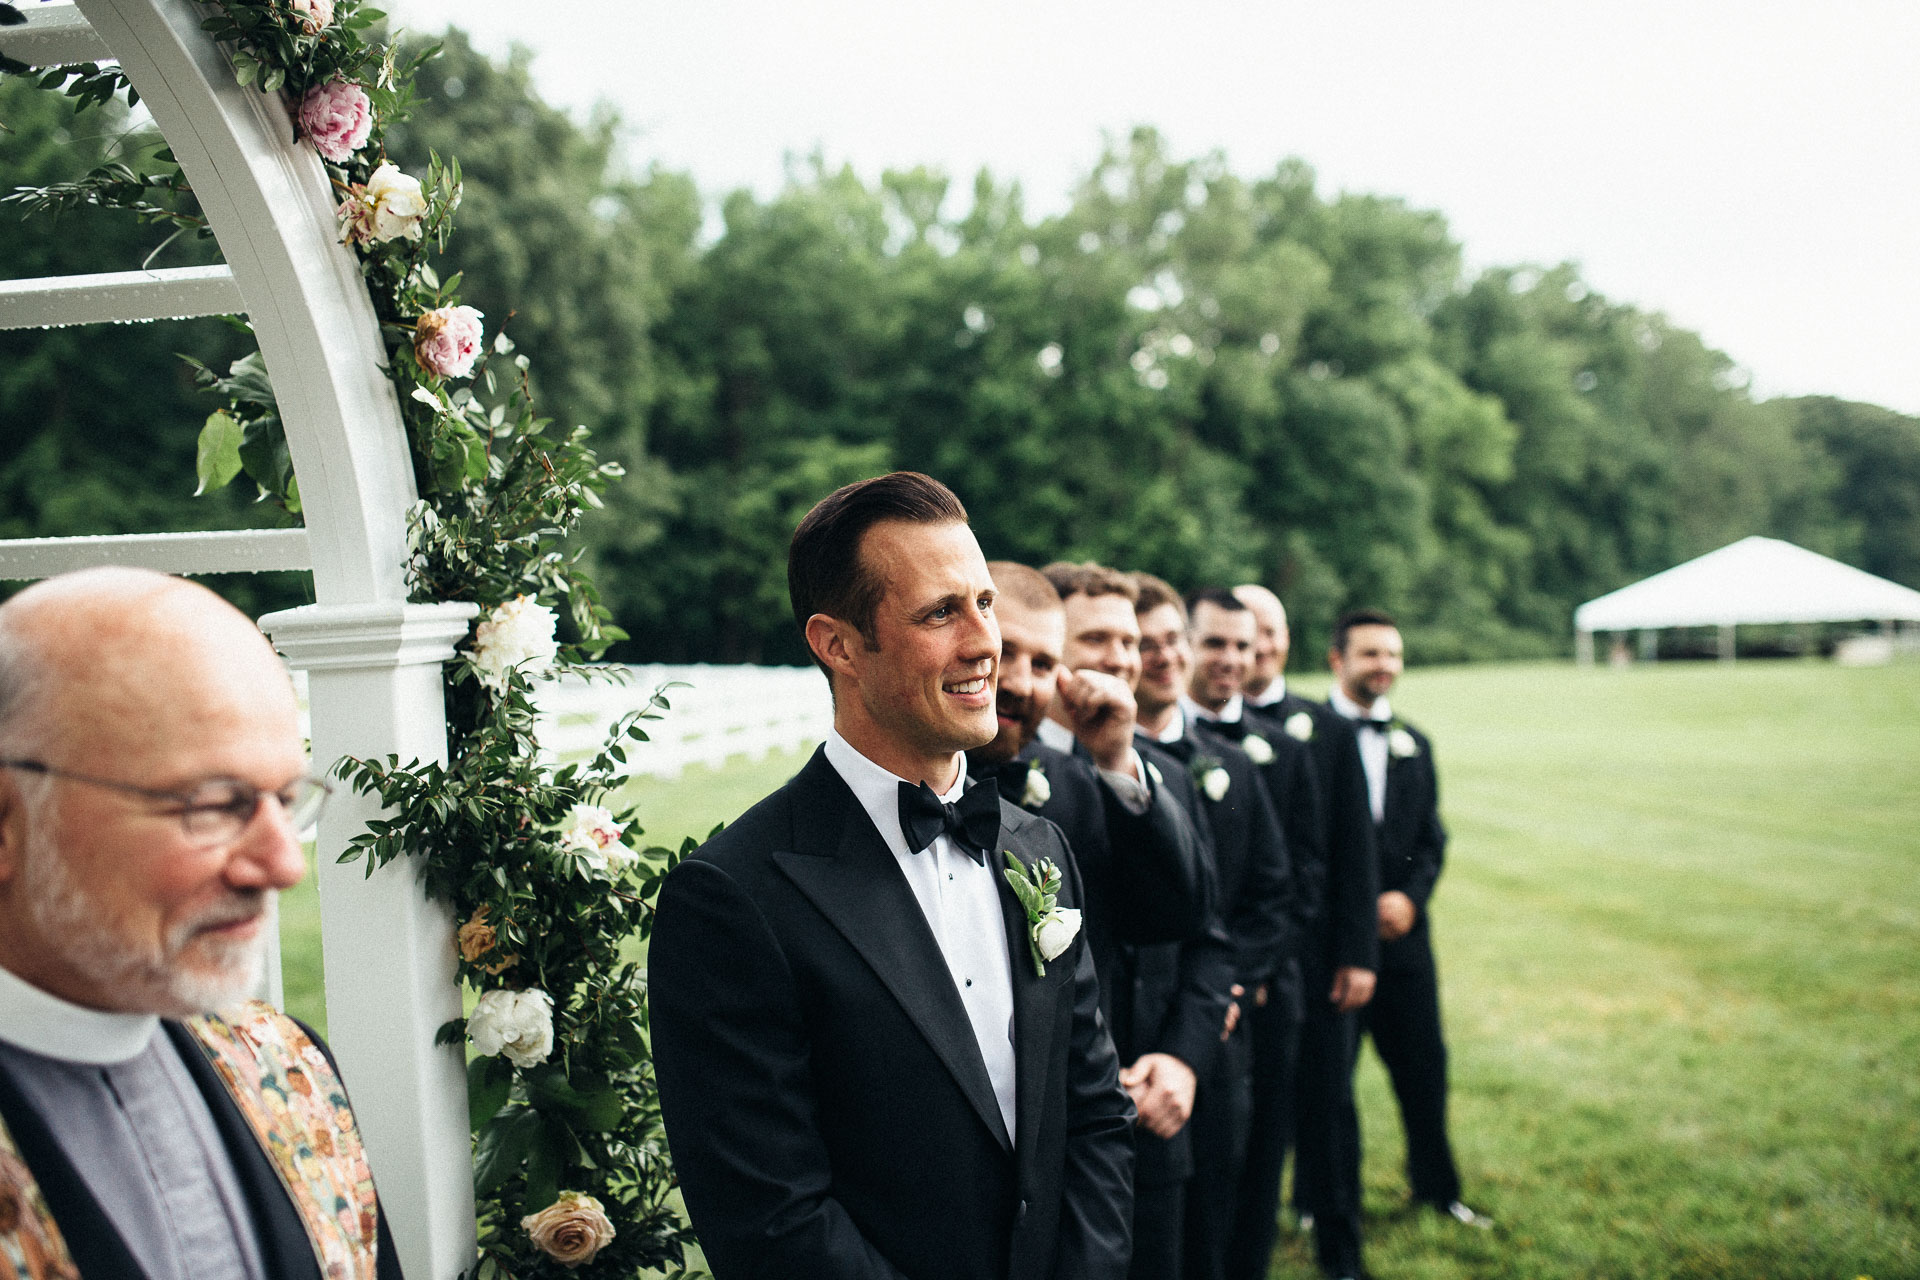 Shawna_Josh_Wedding_Easton_Maryland_JeanLaurentGaudy_070